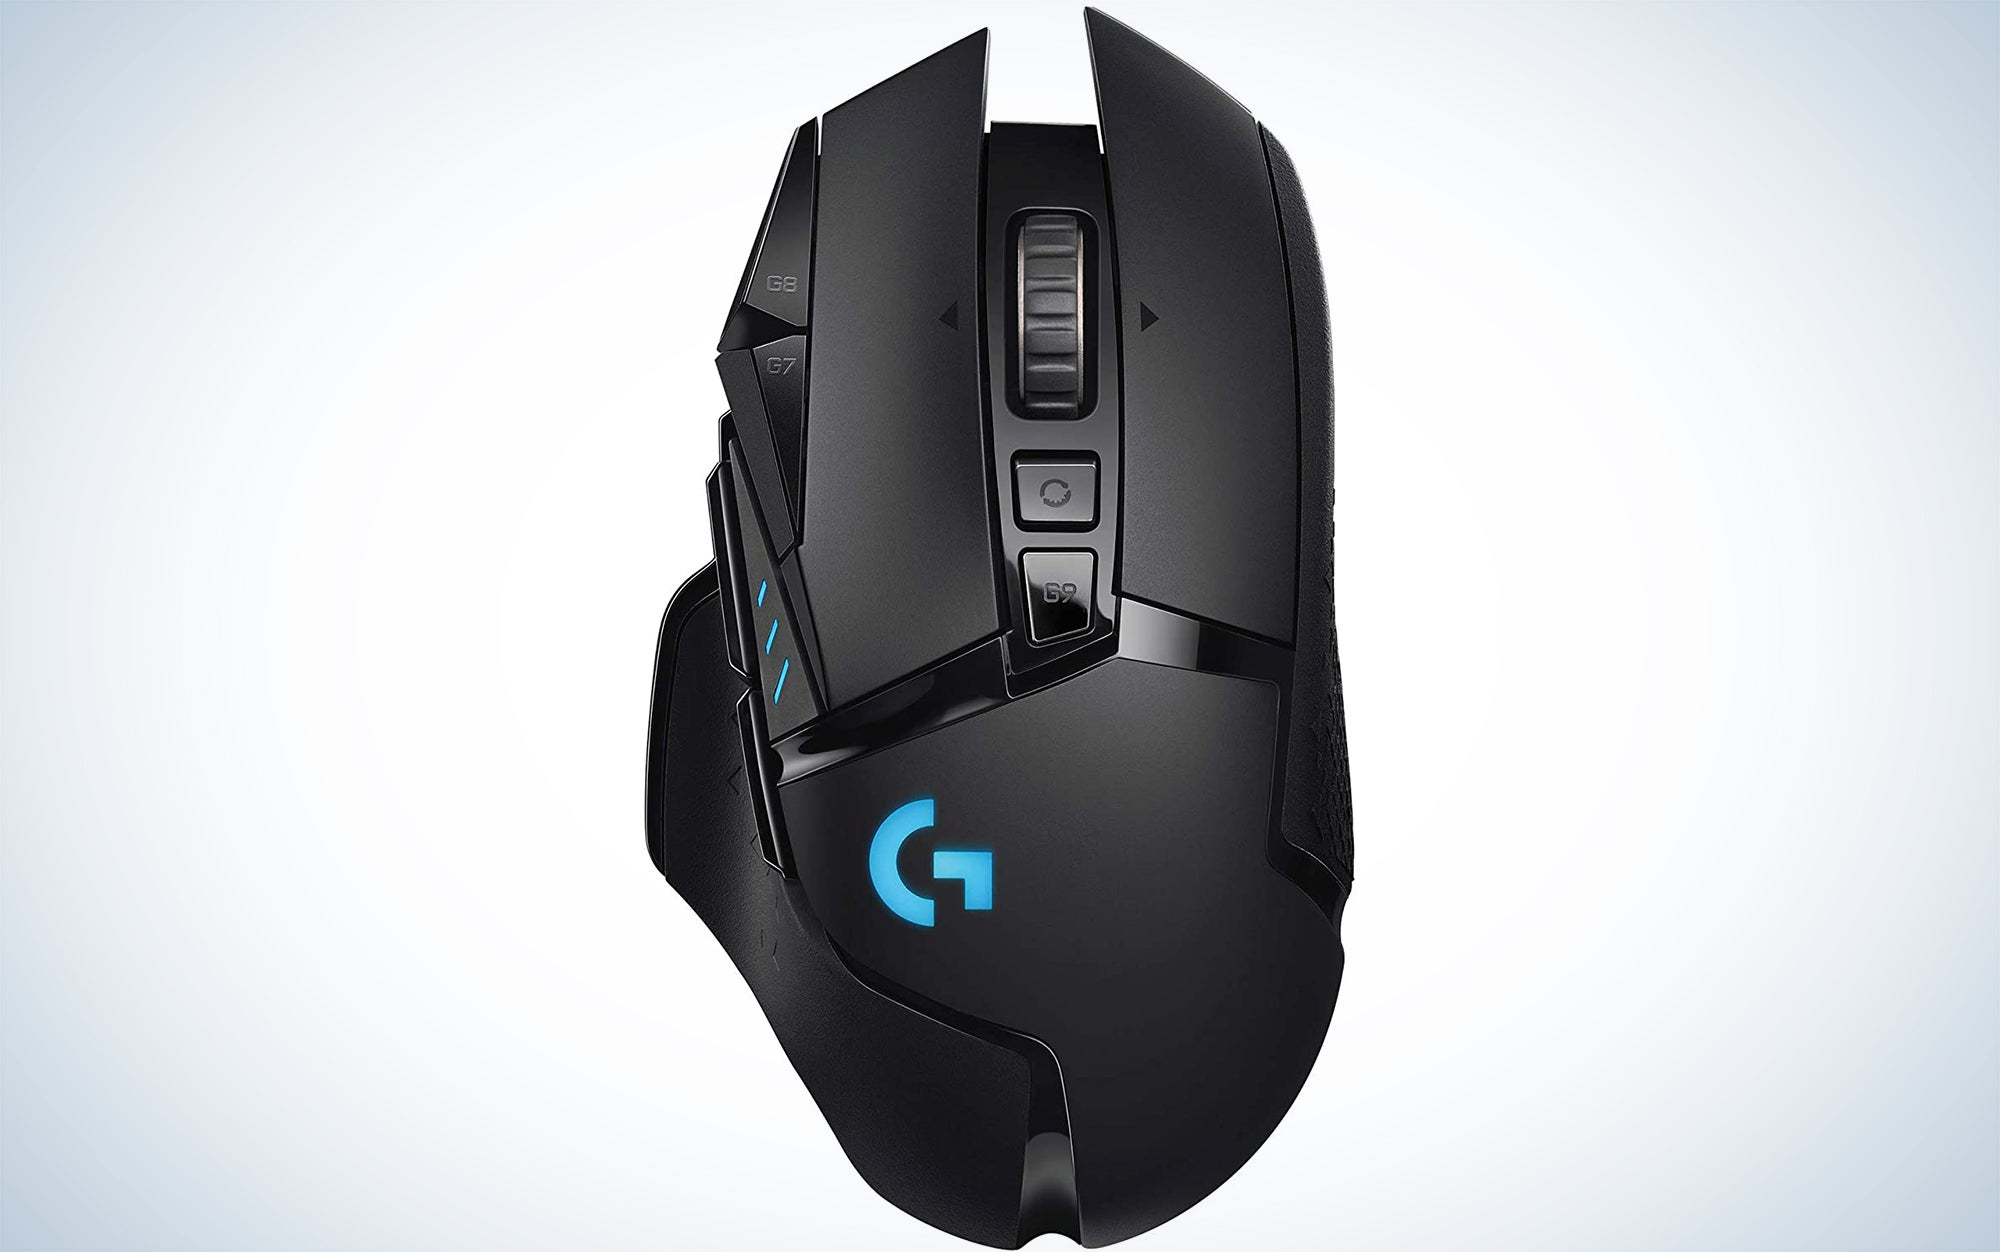 Logitech G502 Lightspeed Wireless Gaming Mouse with HERO 25K Sensor, PowerPlay Compatible, Tunable Weights and Lightsync RGB with the best gaming mouse reviews.